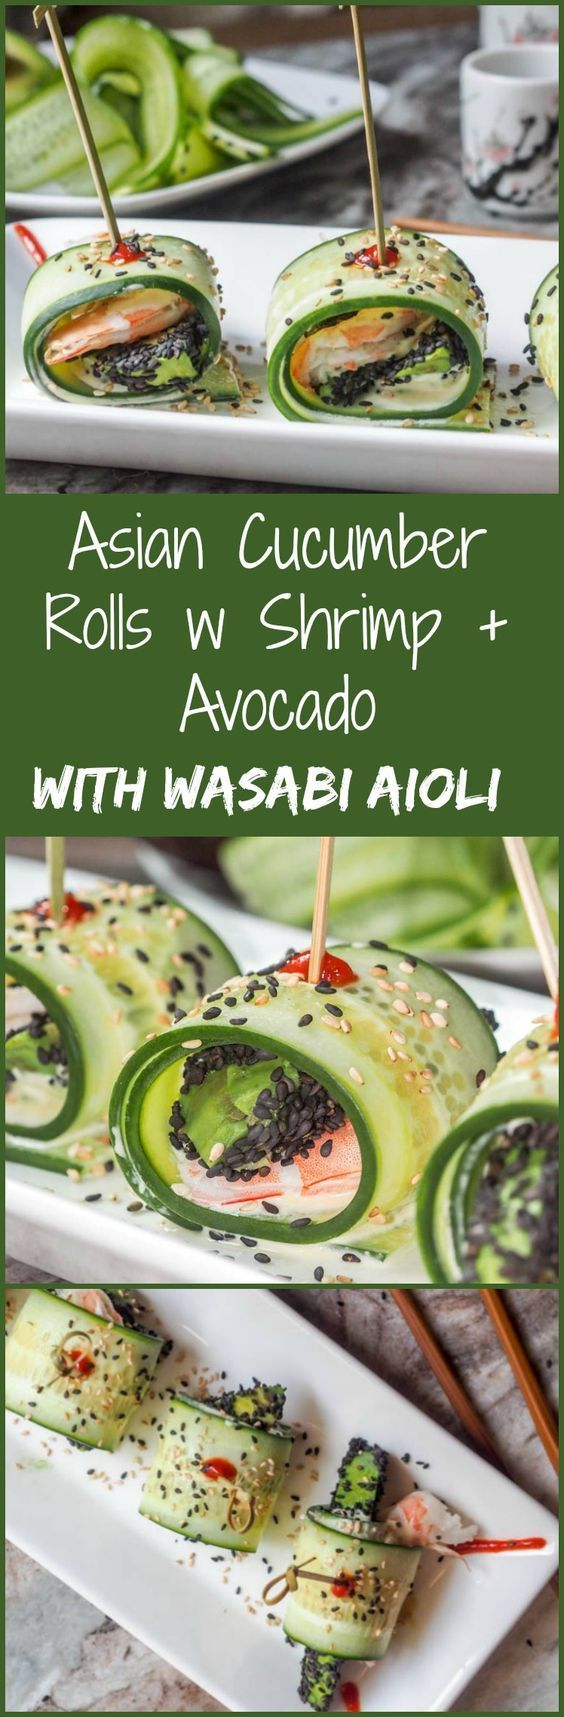 The ultimate low carb, healthy and refreshing summer appetizer or light meal: Asian cucumber rolls with shrimp, avocado and wasabi aioli. Gluten Free + Dairy Free.